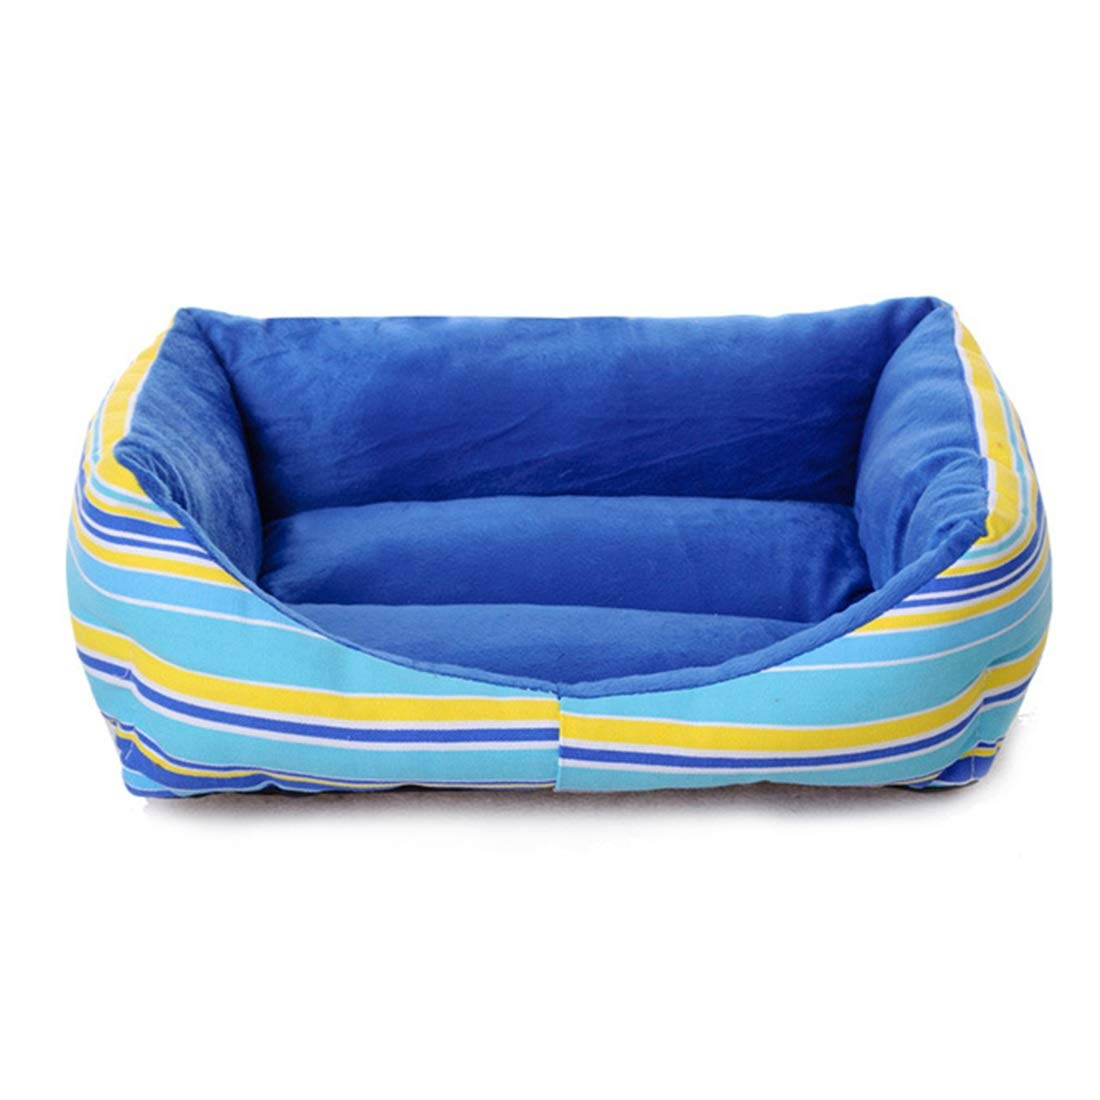 bluee M bluee M WENNEW Pet Nest Rainbow Stripy Kennel Cat Litter Moisture Pp Cotton Cat Litter Bed Kennel (color   bluee, Size   M)